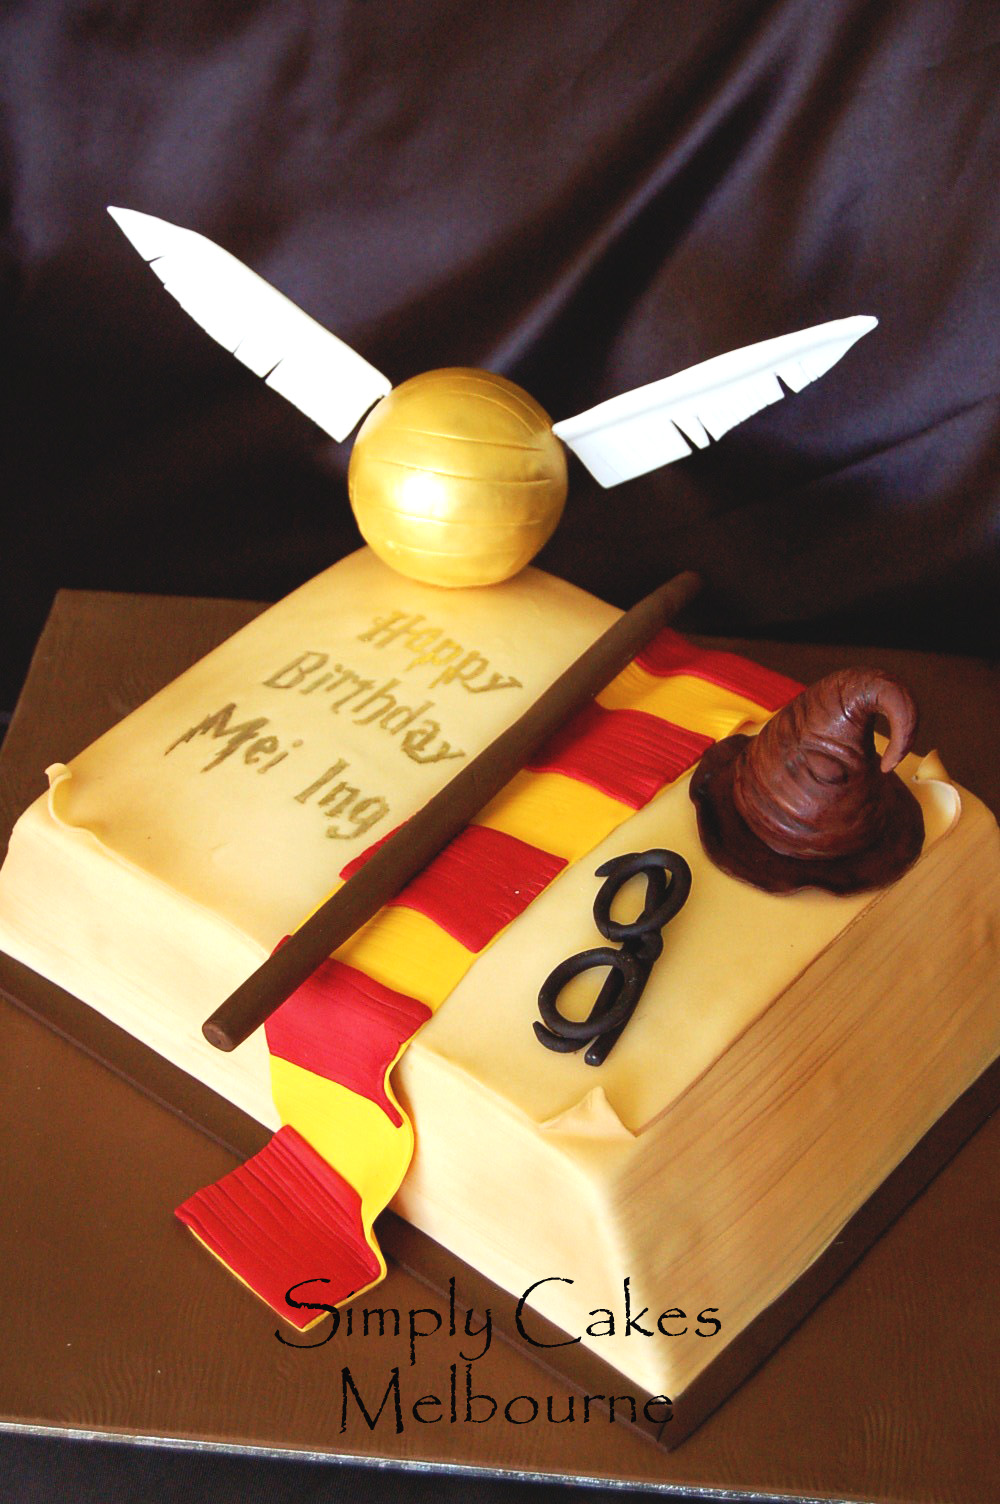 Simply Cakes Melbourne Harry Potter Book Cake